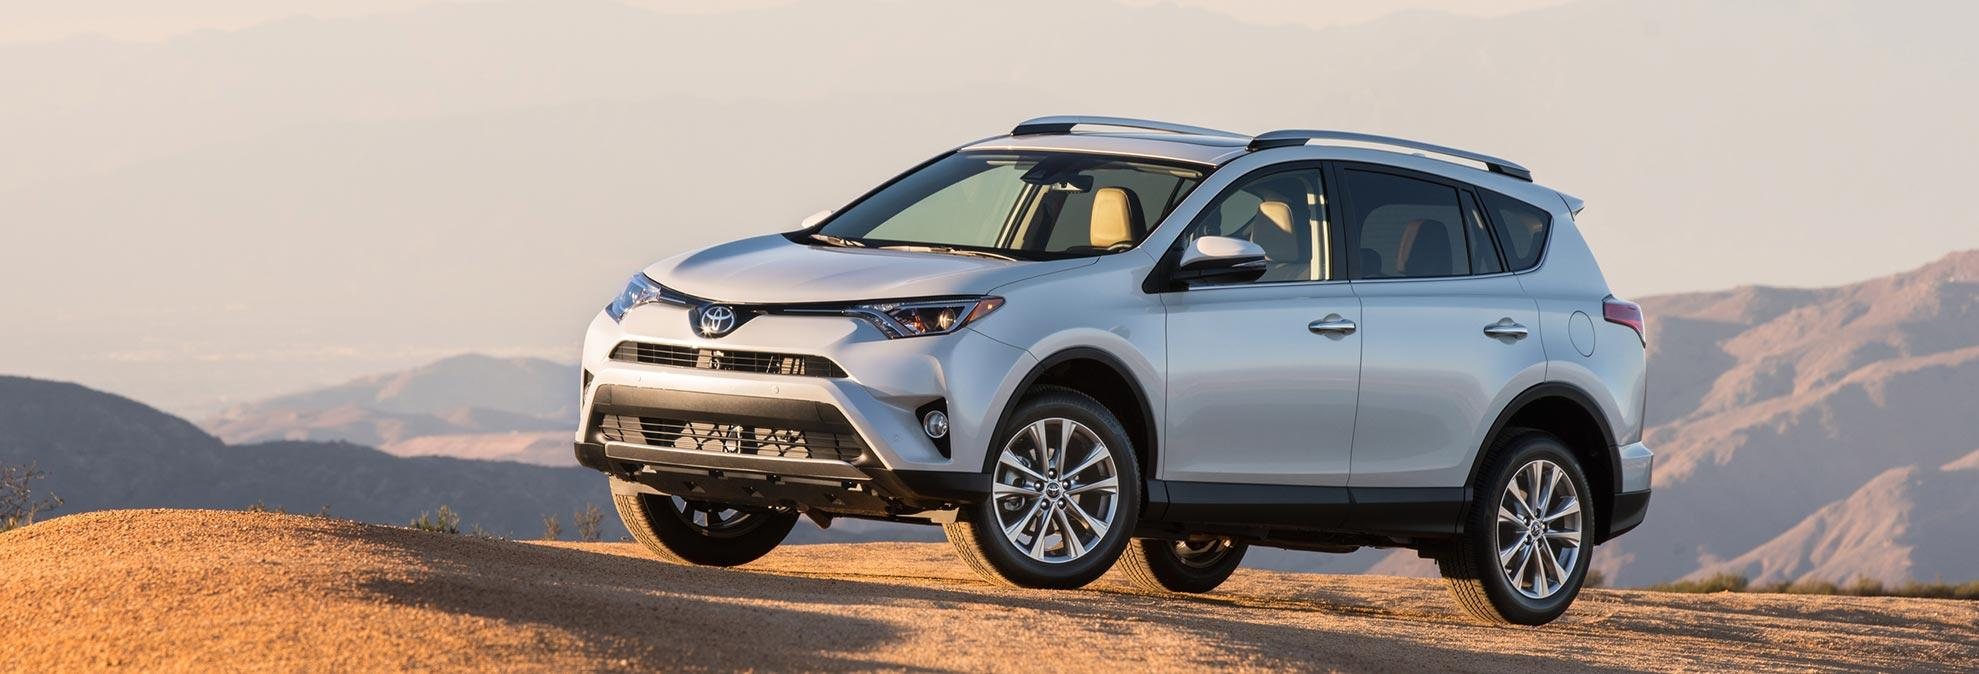 Honda cr v vs toyota rav4 which should you buy for Honda crv vs toyota highlander